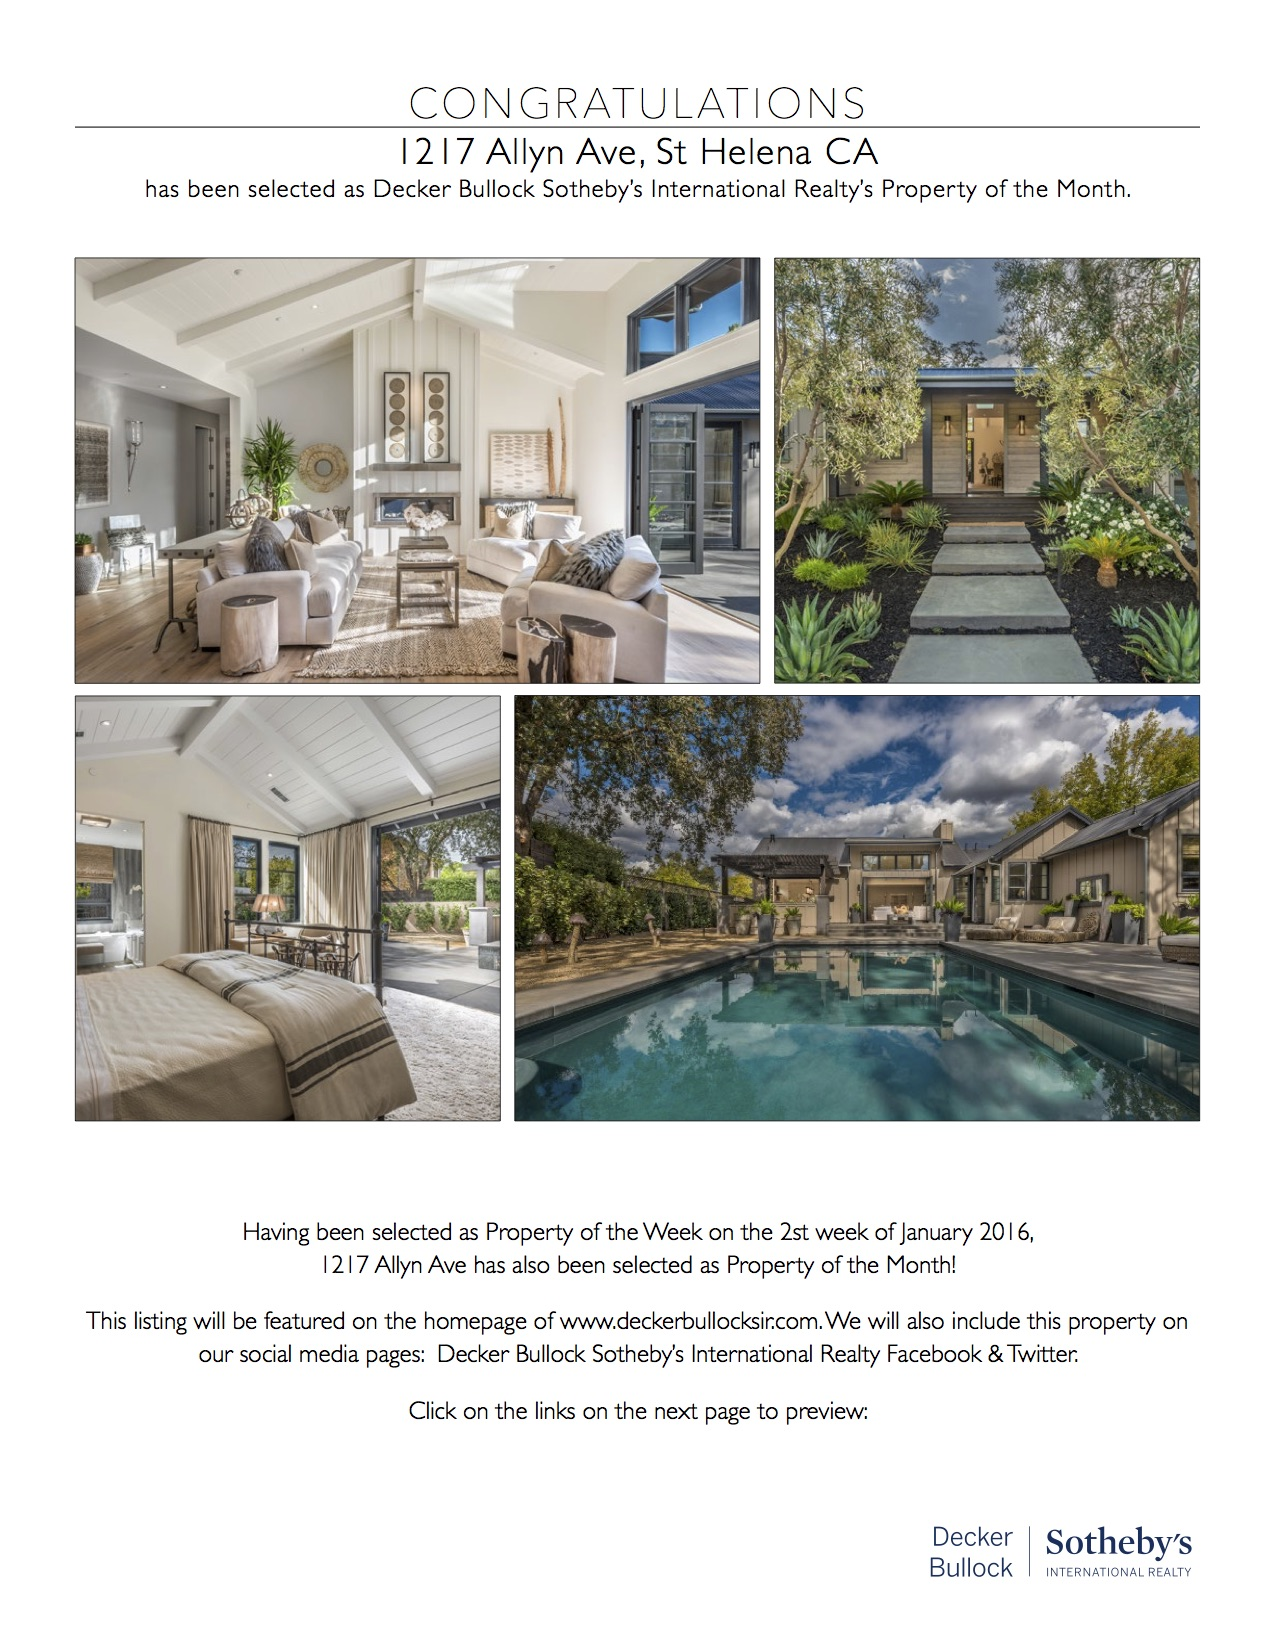 Decker Bullock Sotheby's International Realty's Property of the Month – Nicole Needham